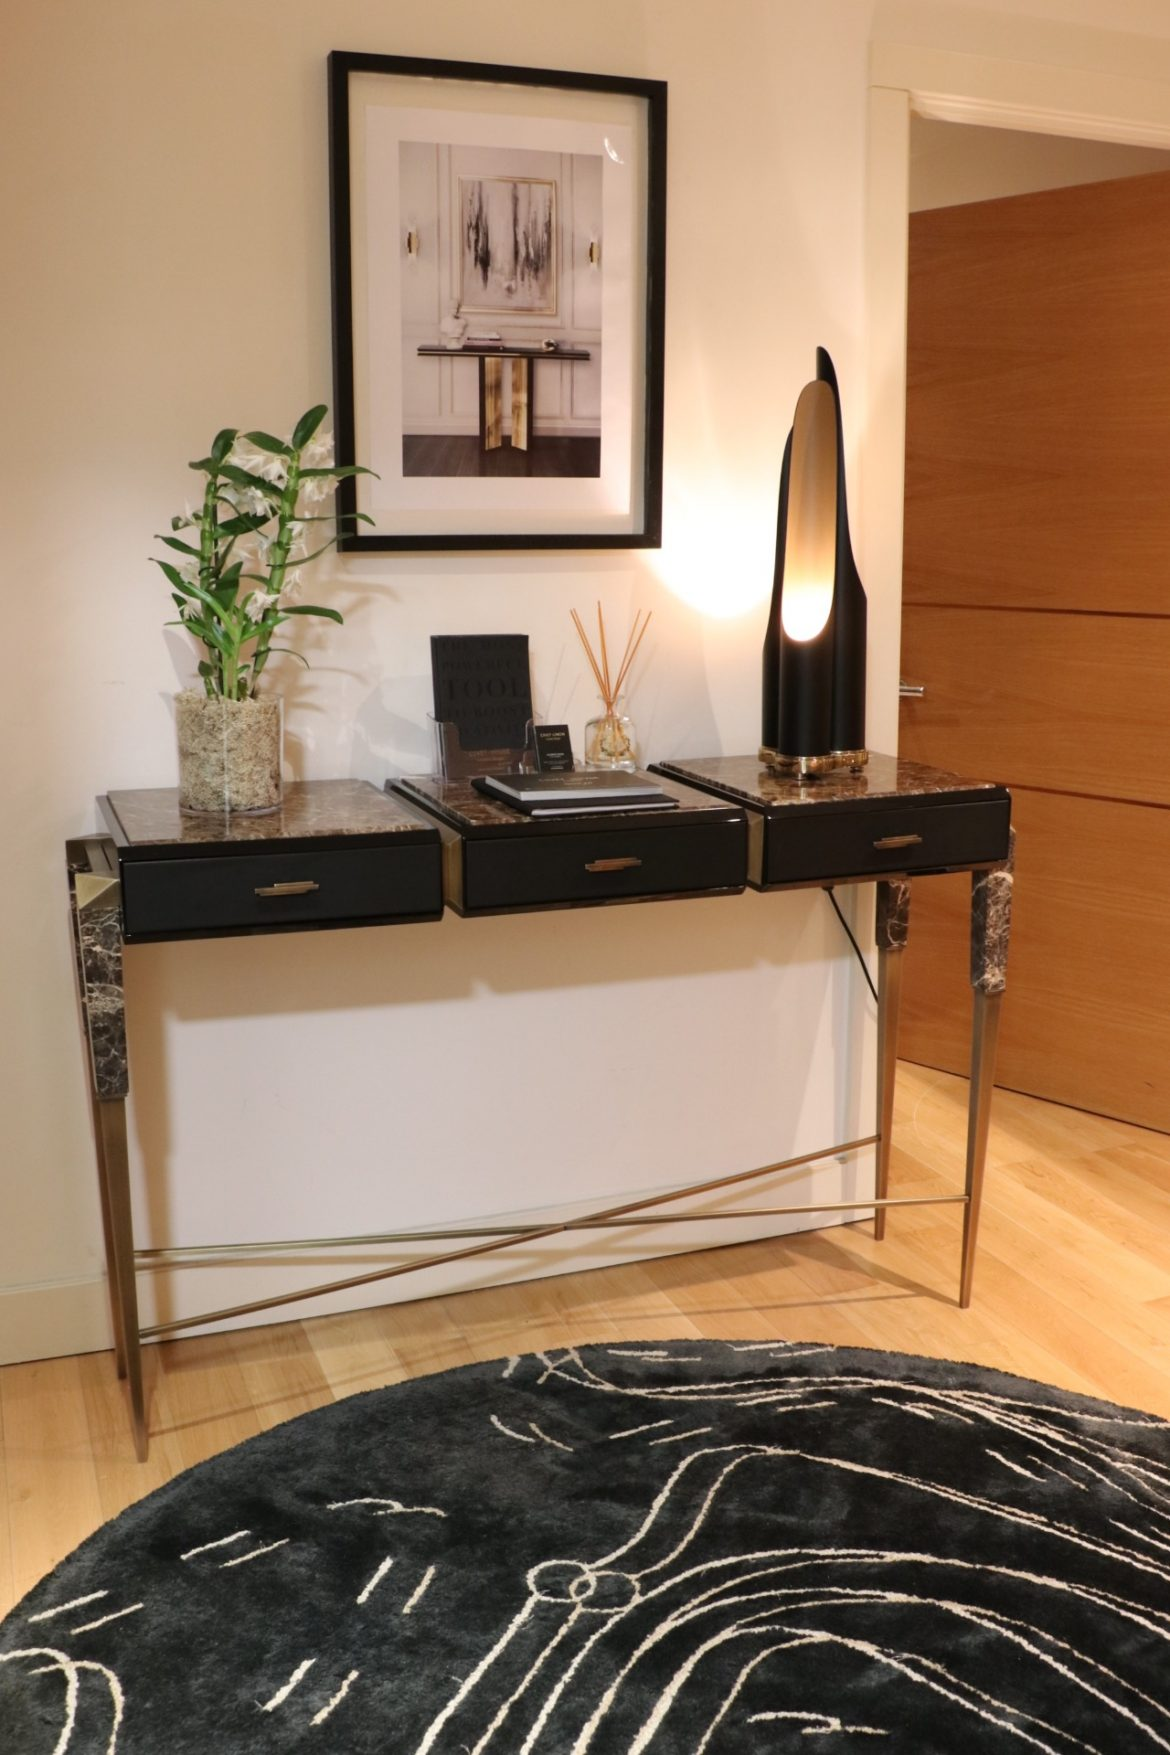 covet london Covet London: Be Inspired By The Most Amazing Furniture Pieces covet london inspired amazing furniture pieces 5